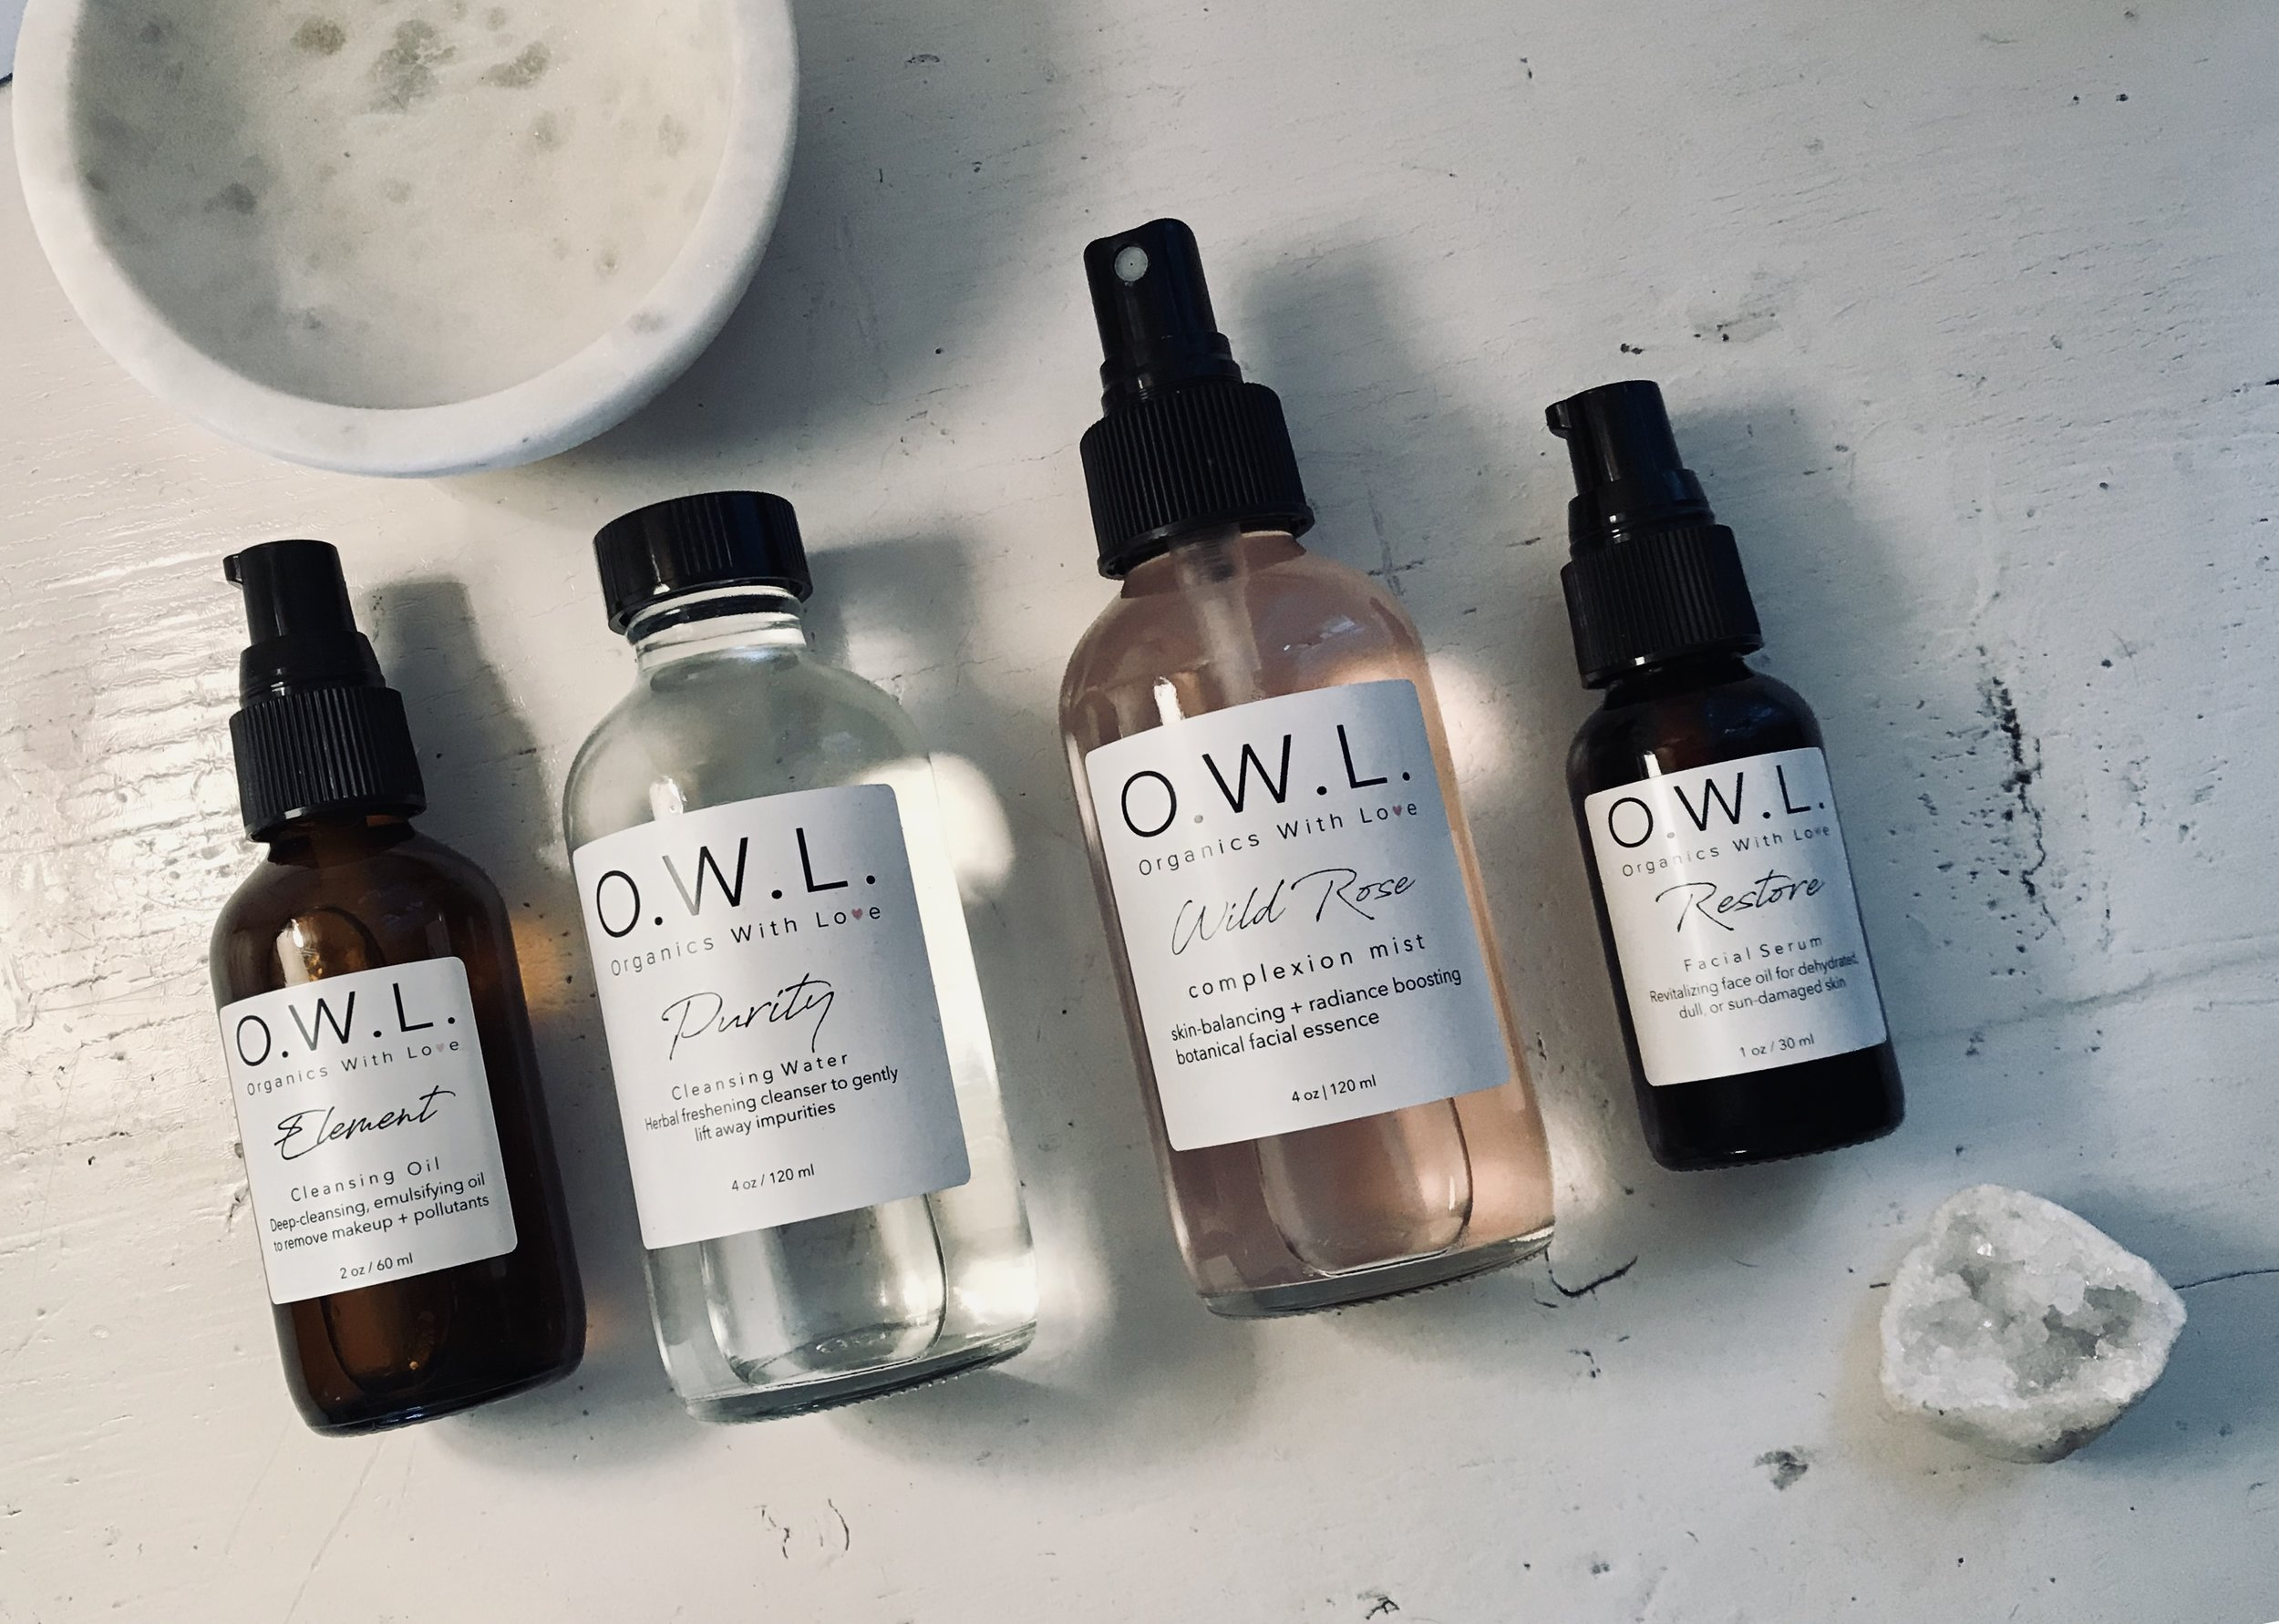 our recommendations: - Element Cleansing Oil + Purity Cleansing Water + Wild Rose Complexion Mist + Restore Age-Defying Serum.While our entire collection works synergistically with the skin to bring you the best results, this ultimate age-defying protocol will enhance your natural glow and encourage your daily self-care practice.